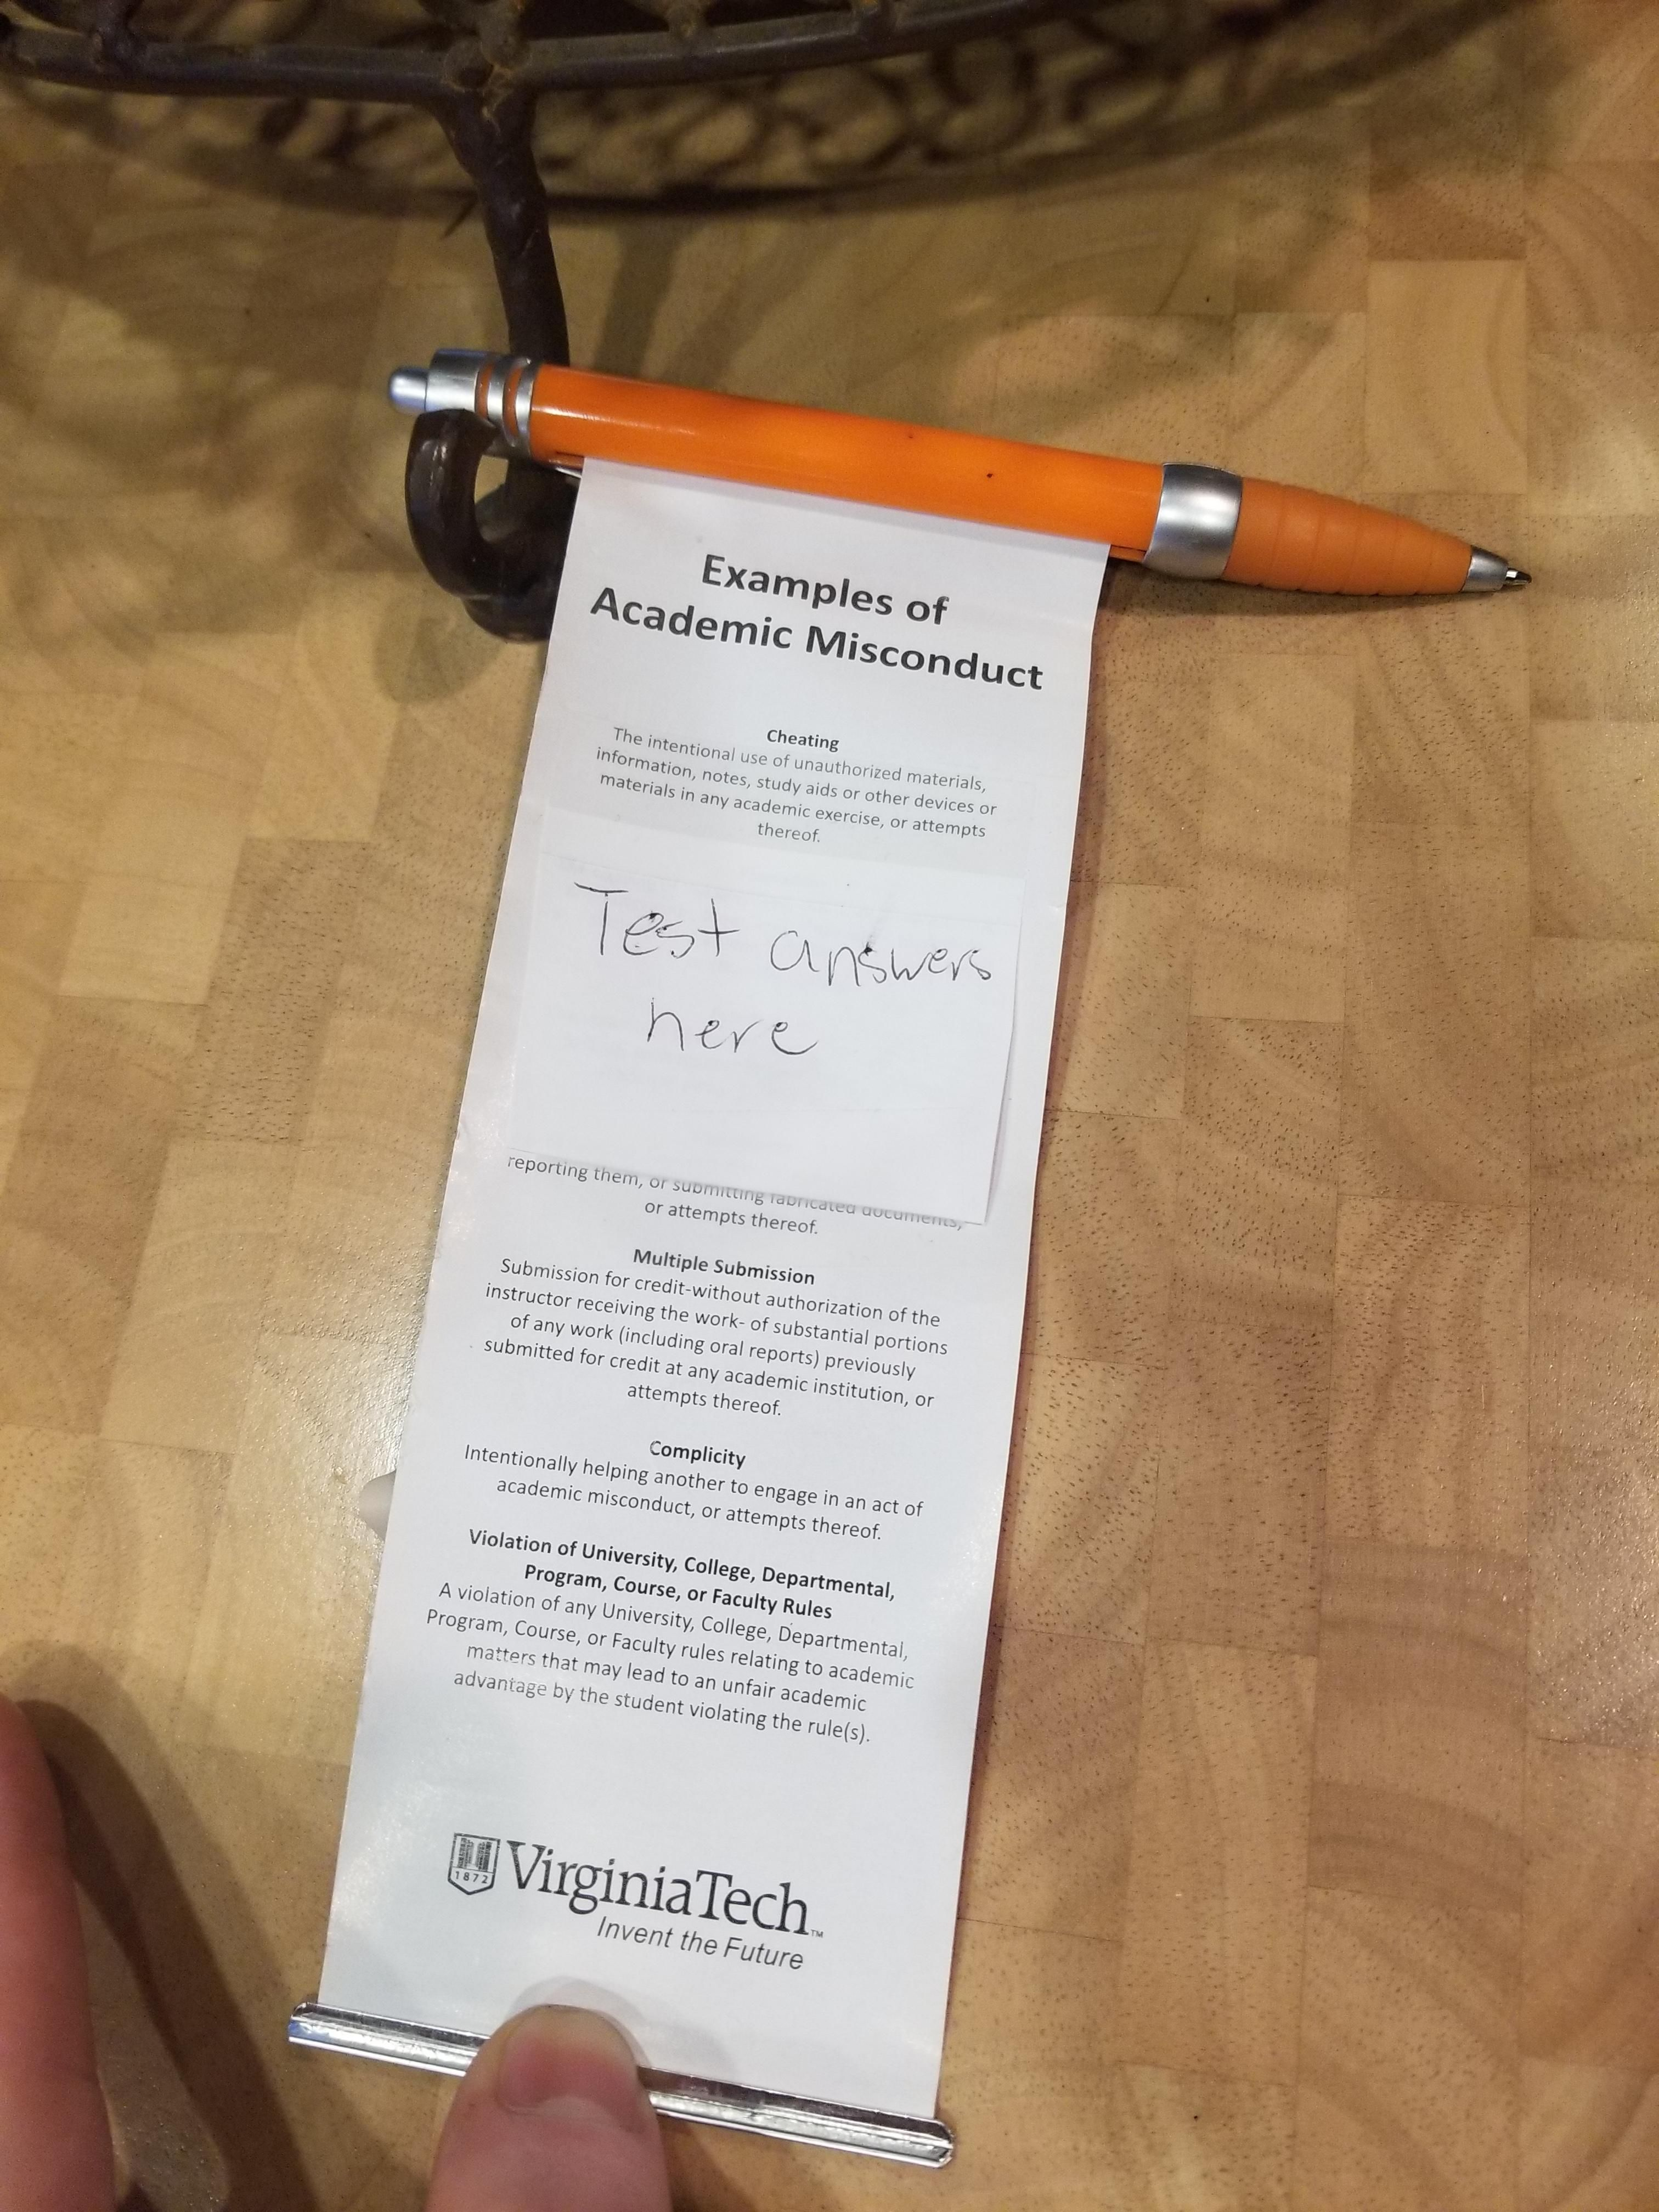 My college's anti-cheating pens are perfect for cheating.